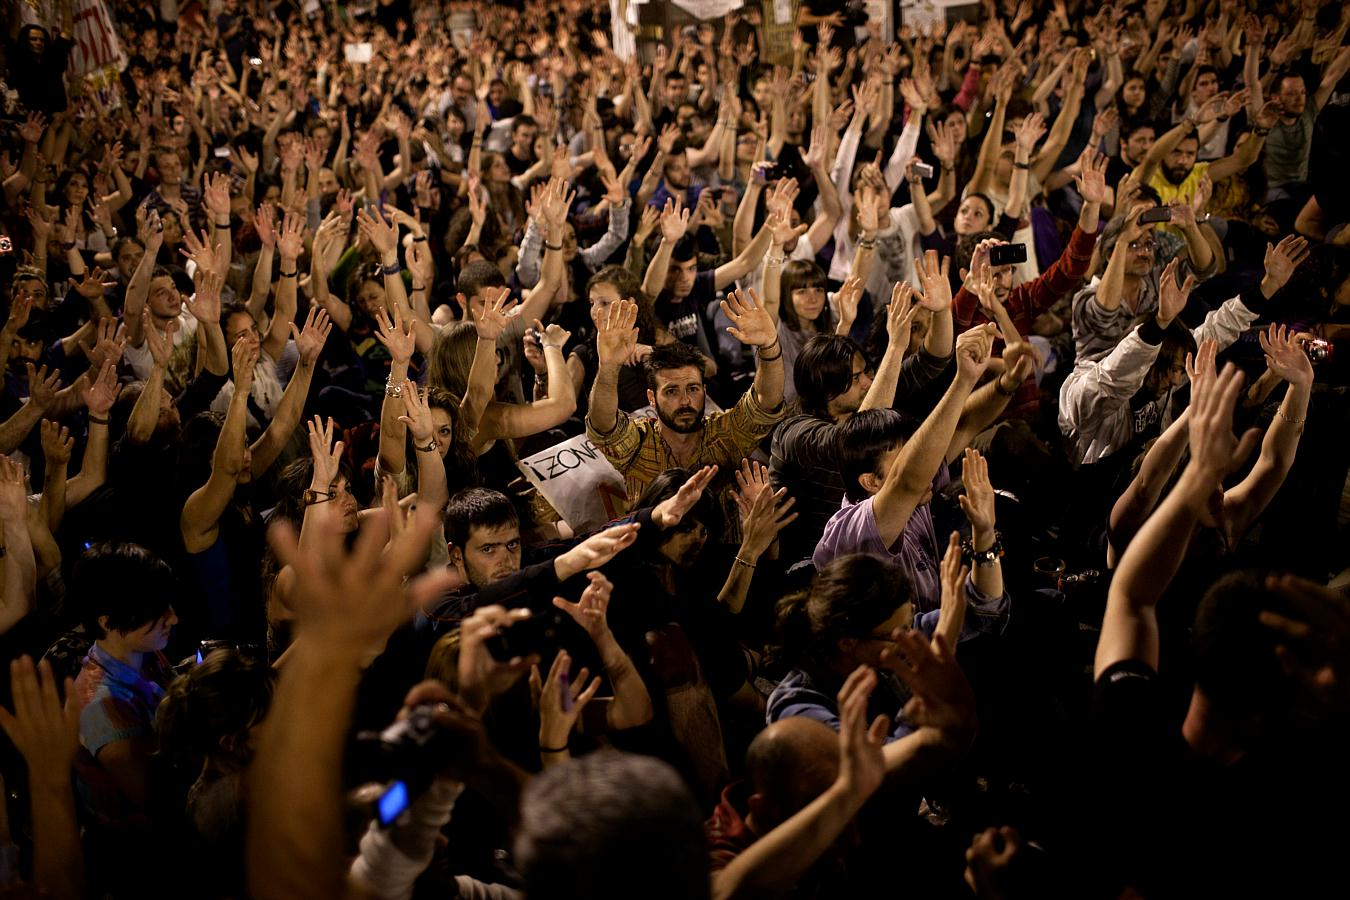 Demonstrators raise their hands during a protest at Sol square in Madrid, Monday, May 23, 2011. Photo: Emilio Morenatti